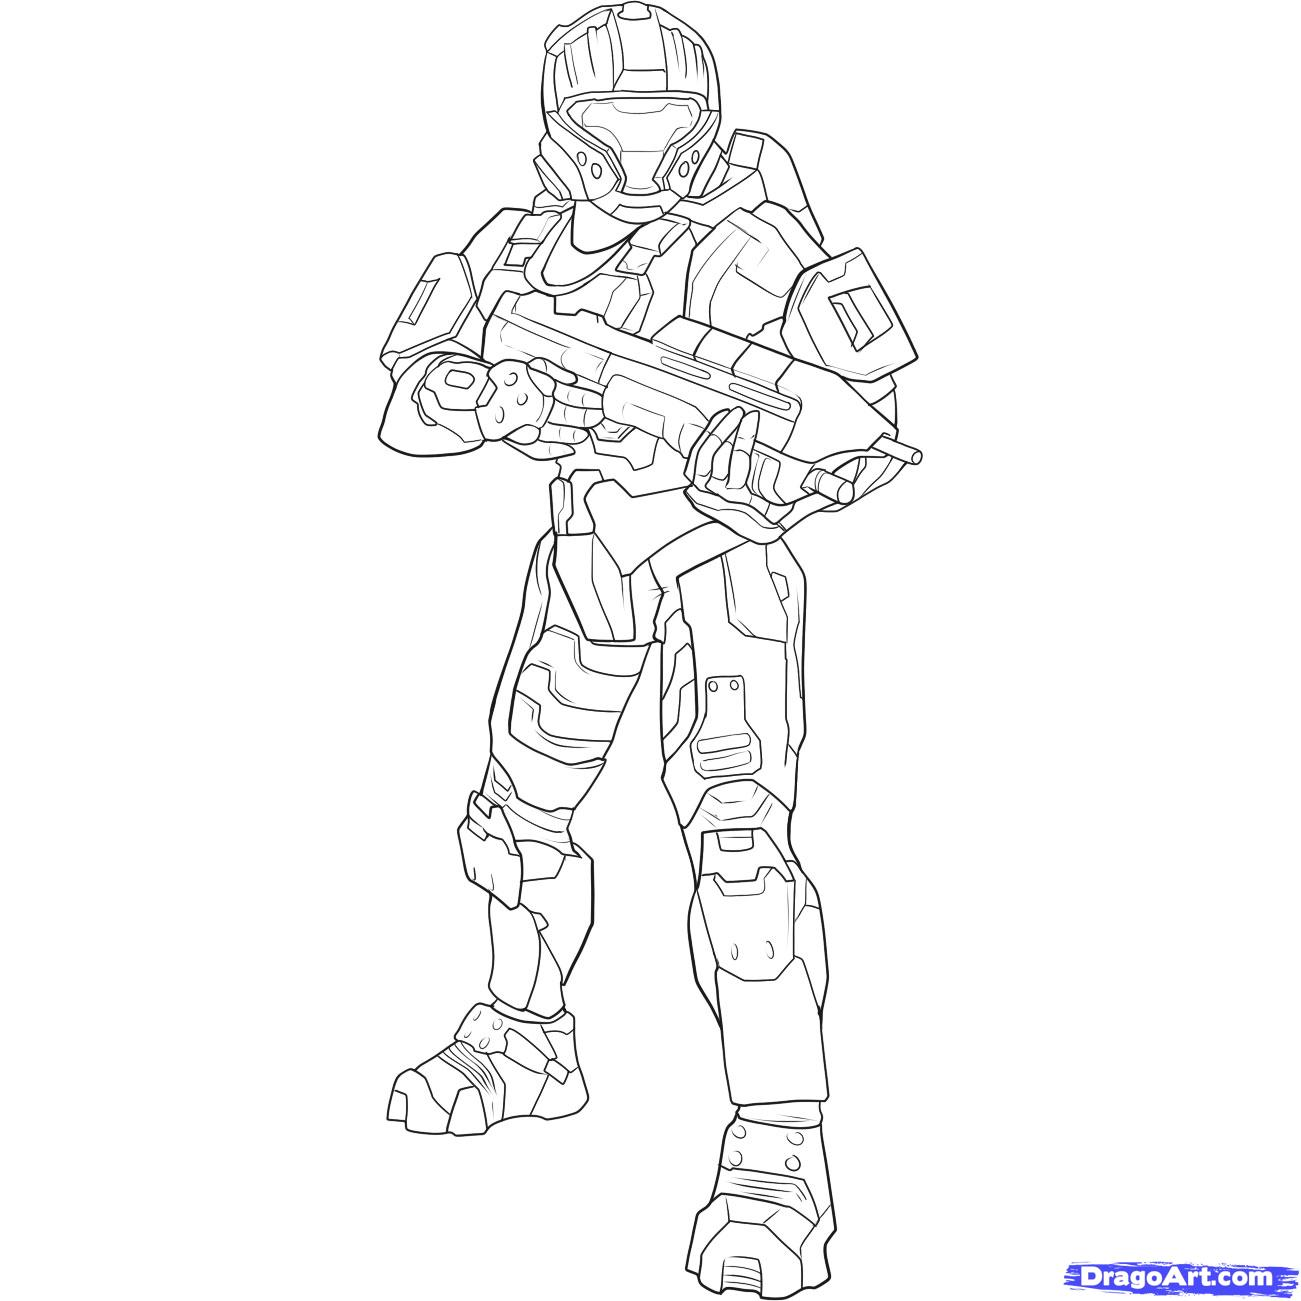 Halo Reach Mountains coloring #6, Download drawings